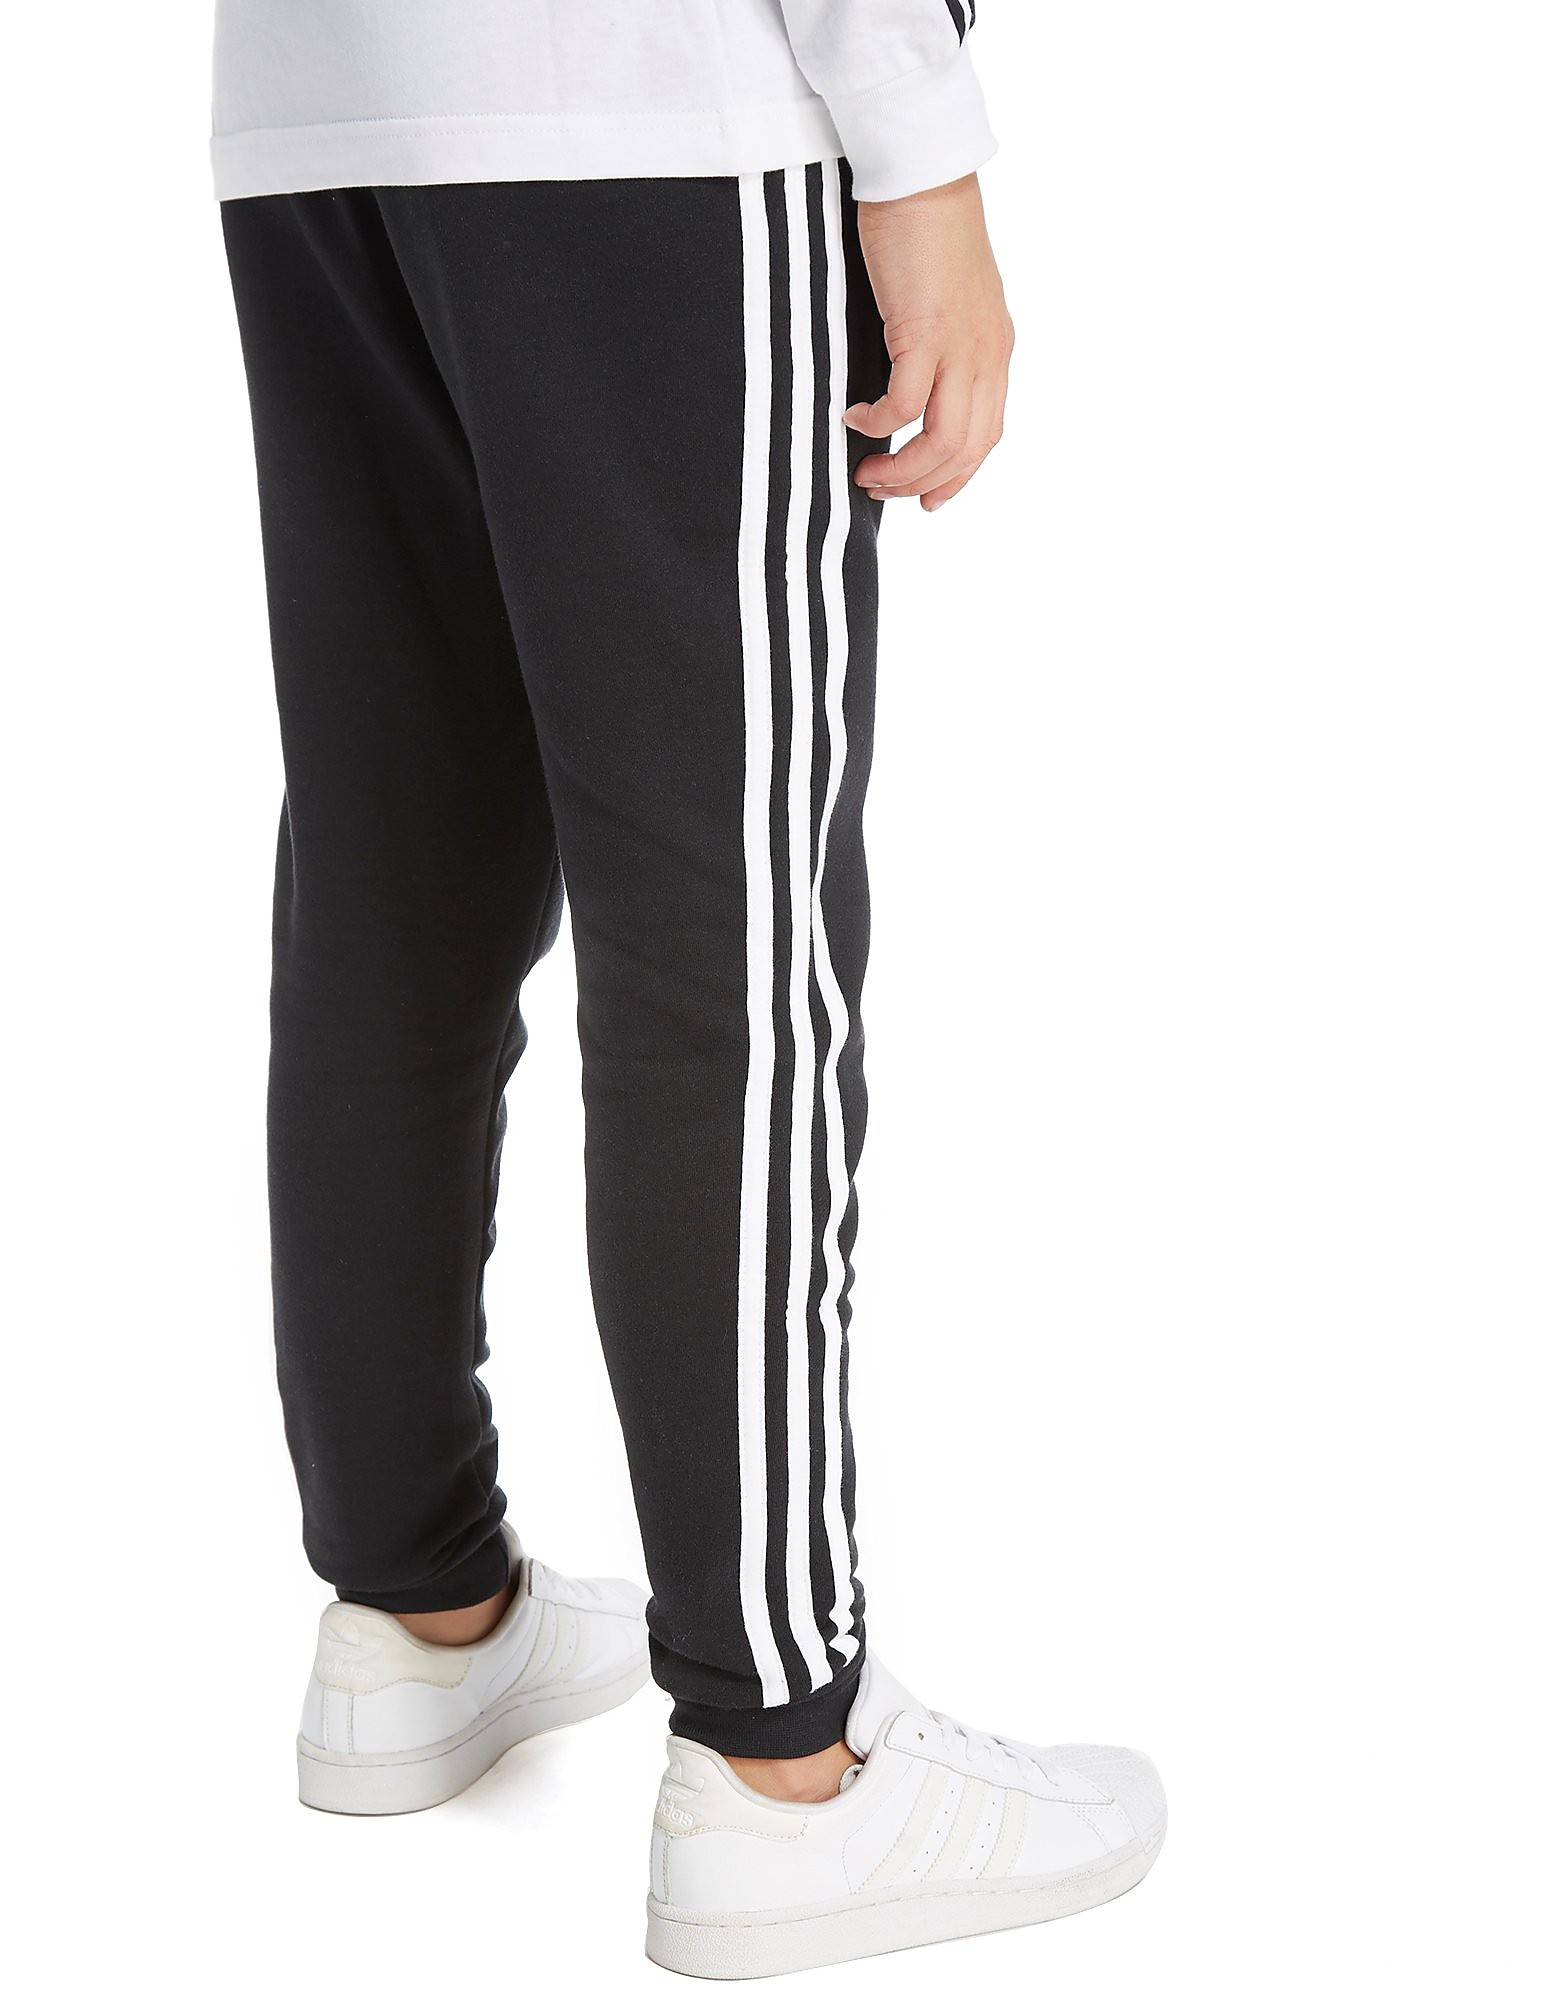 adidas Originals Itasca Pantaloni Junior